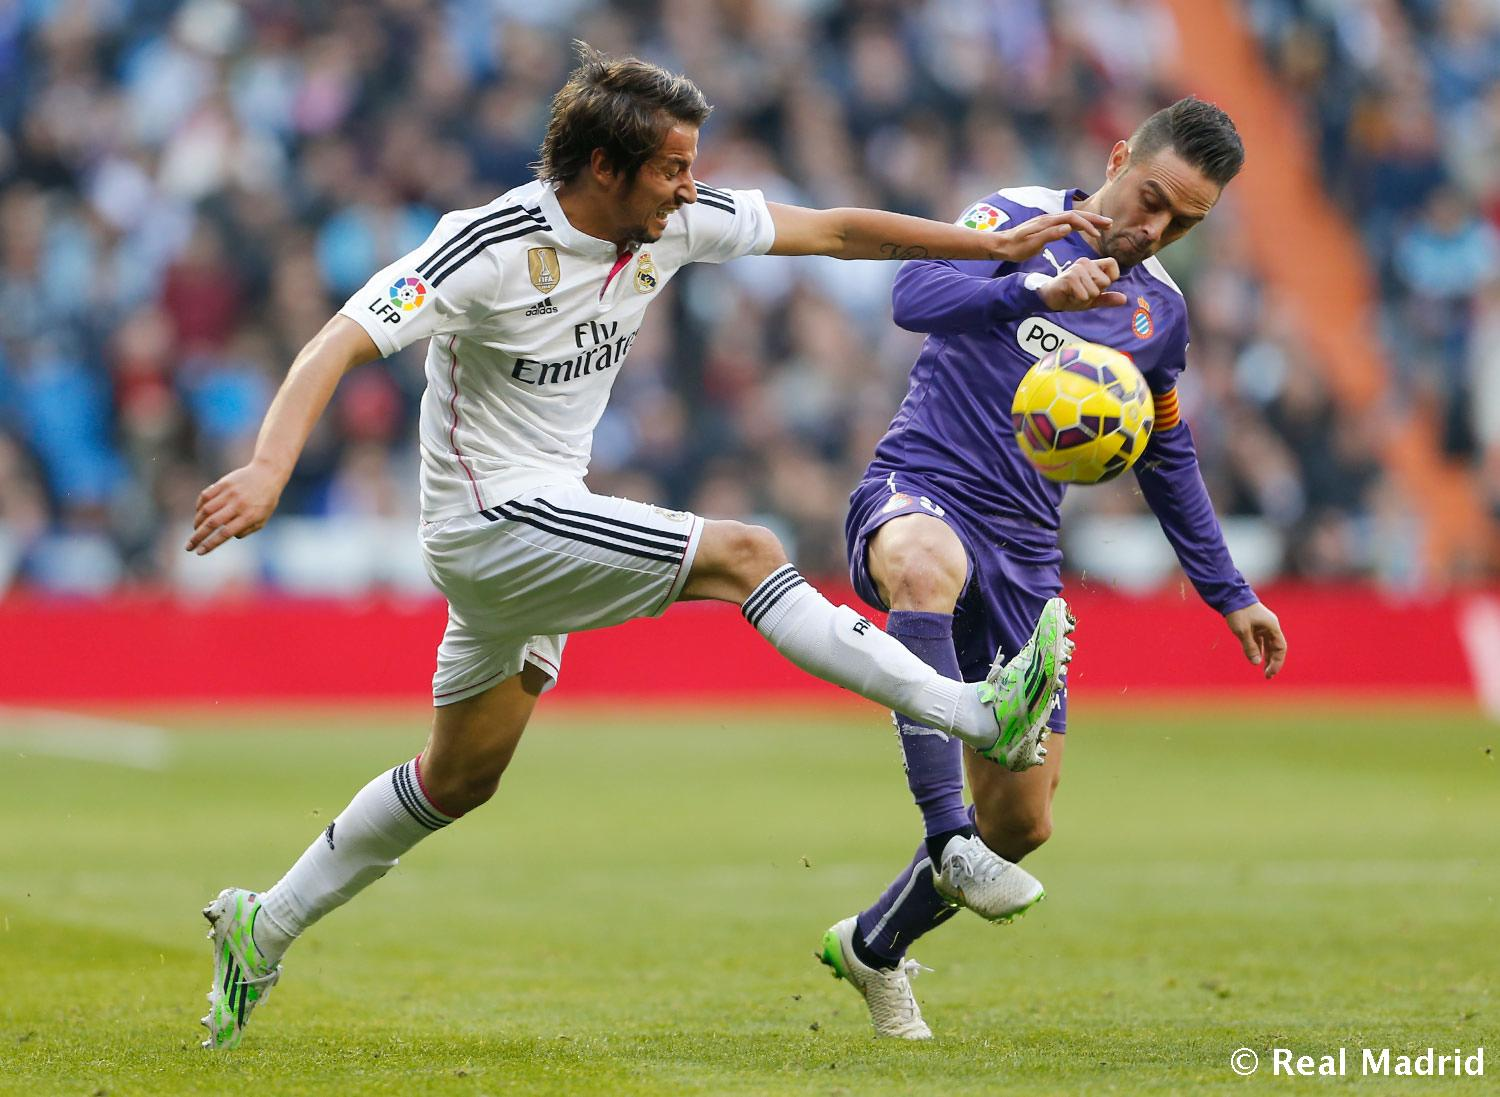 Real Madrid - Real Madrid - Espanyol - 10-01-2015